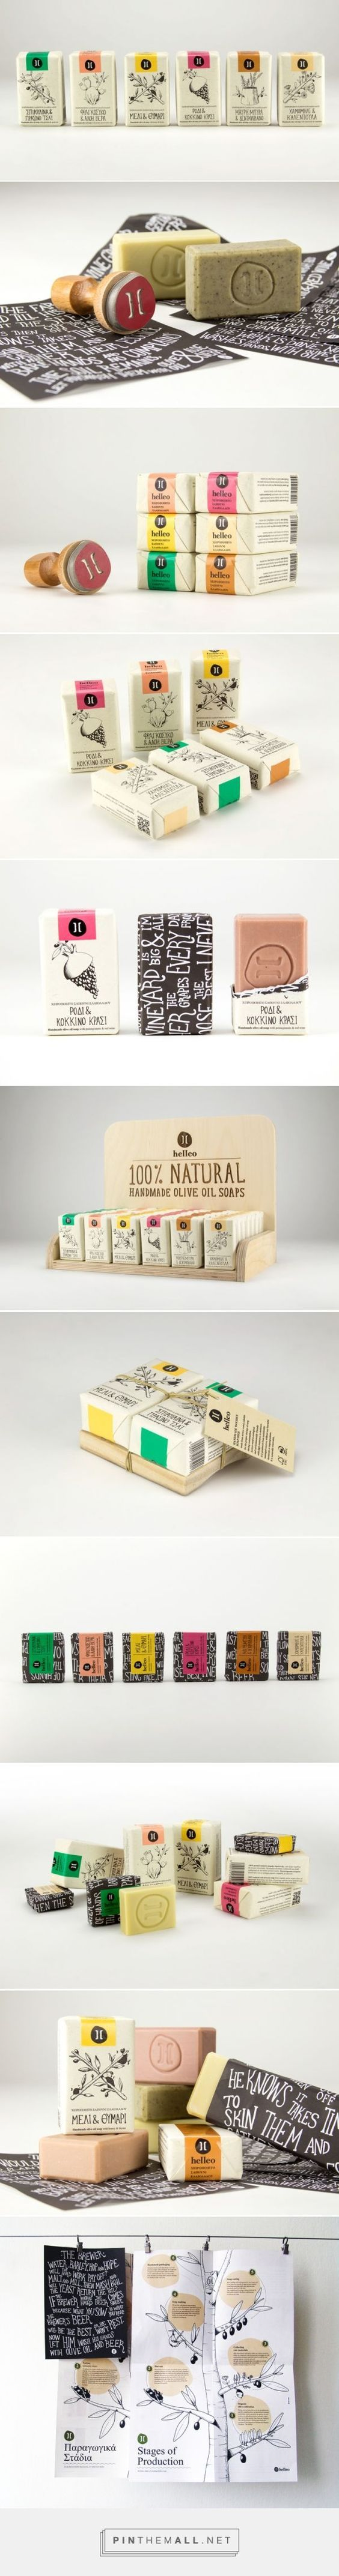 Helleo Natural Soap Packaging by till noon | Fivestar Branding – Design and Branding Agency & Inspiration Gallery